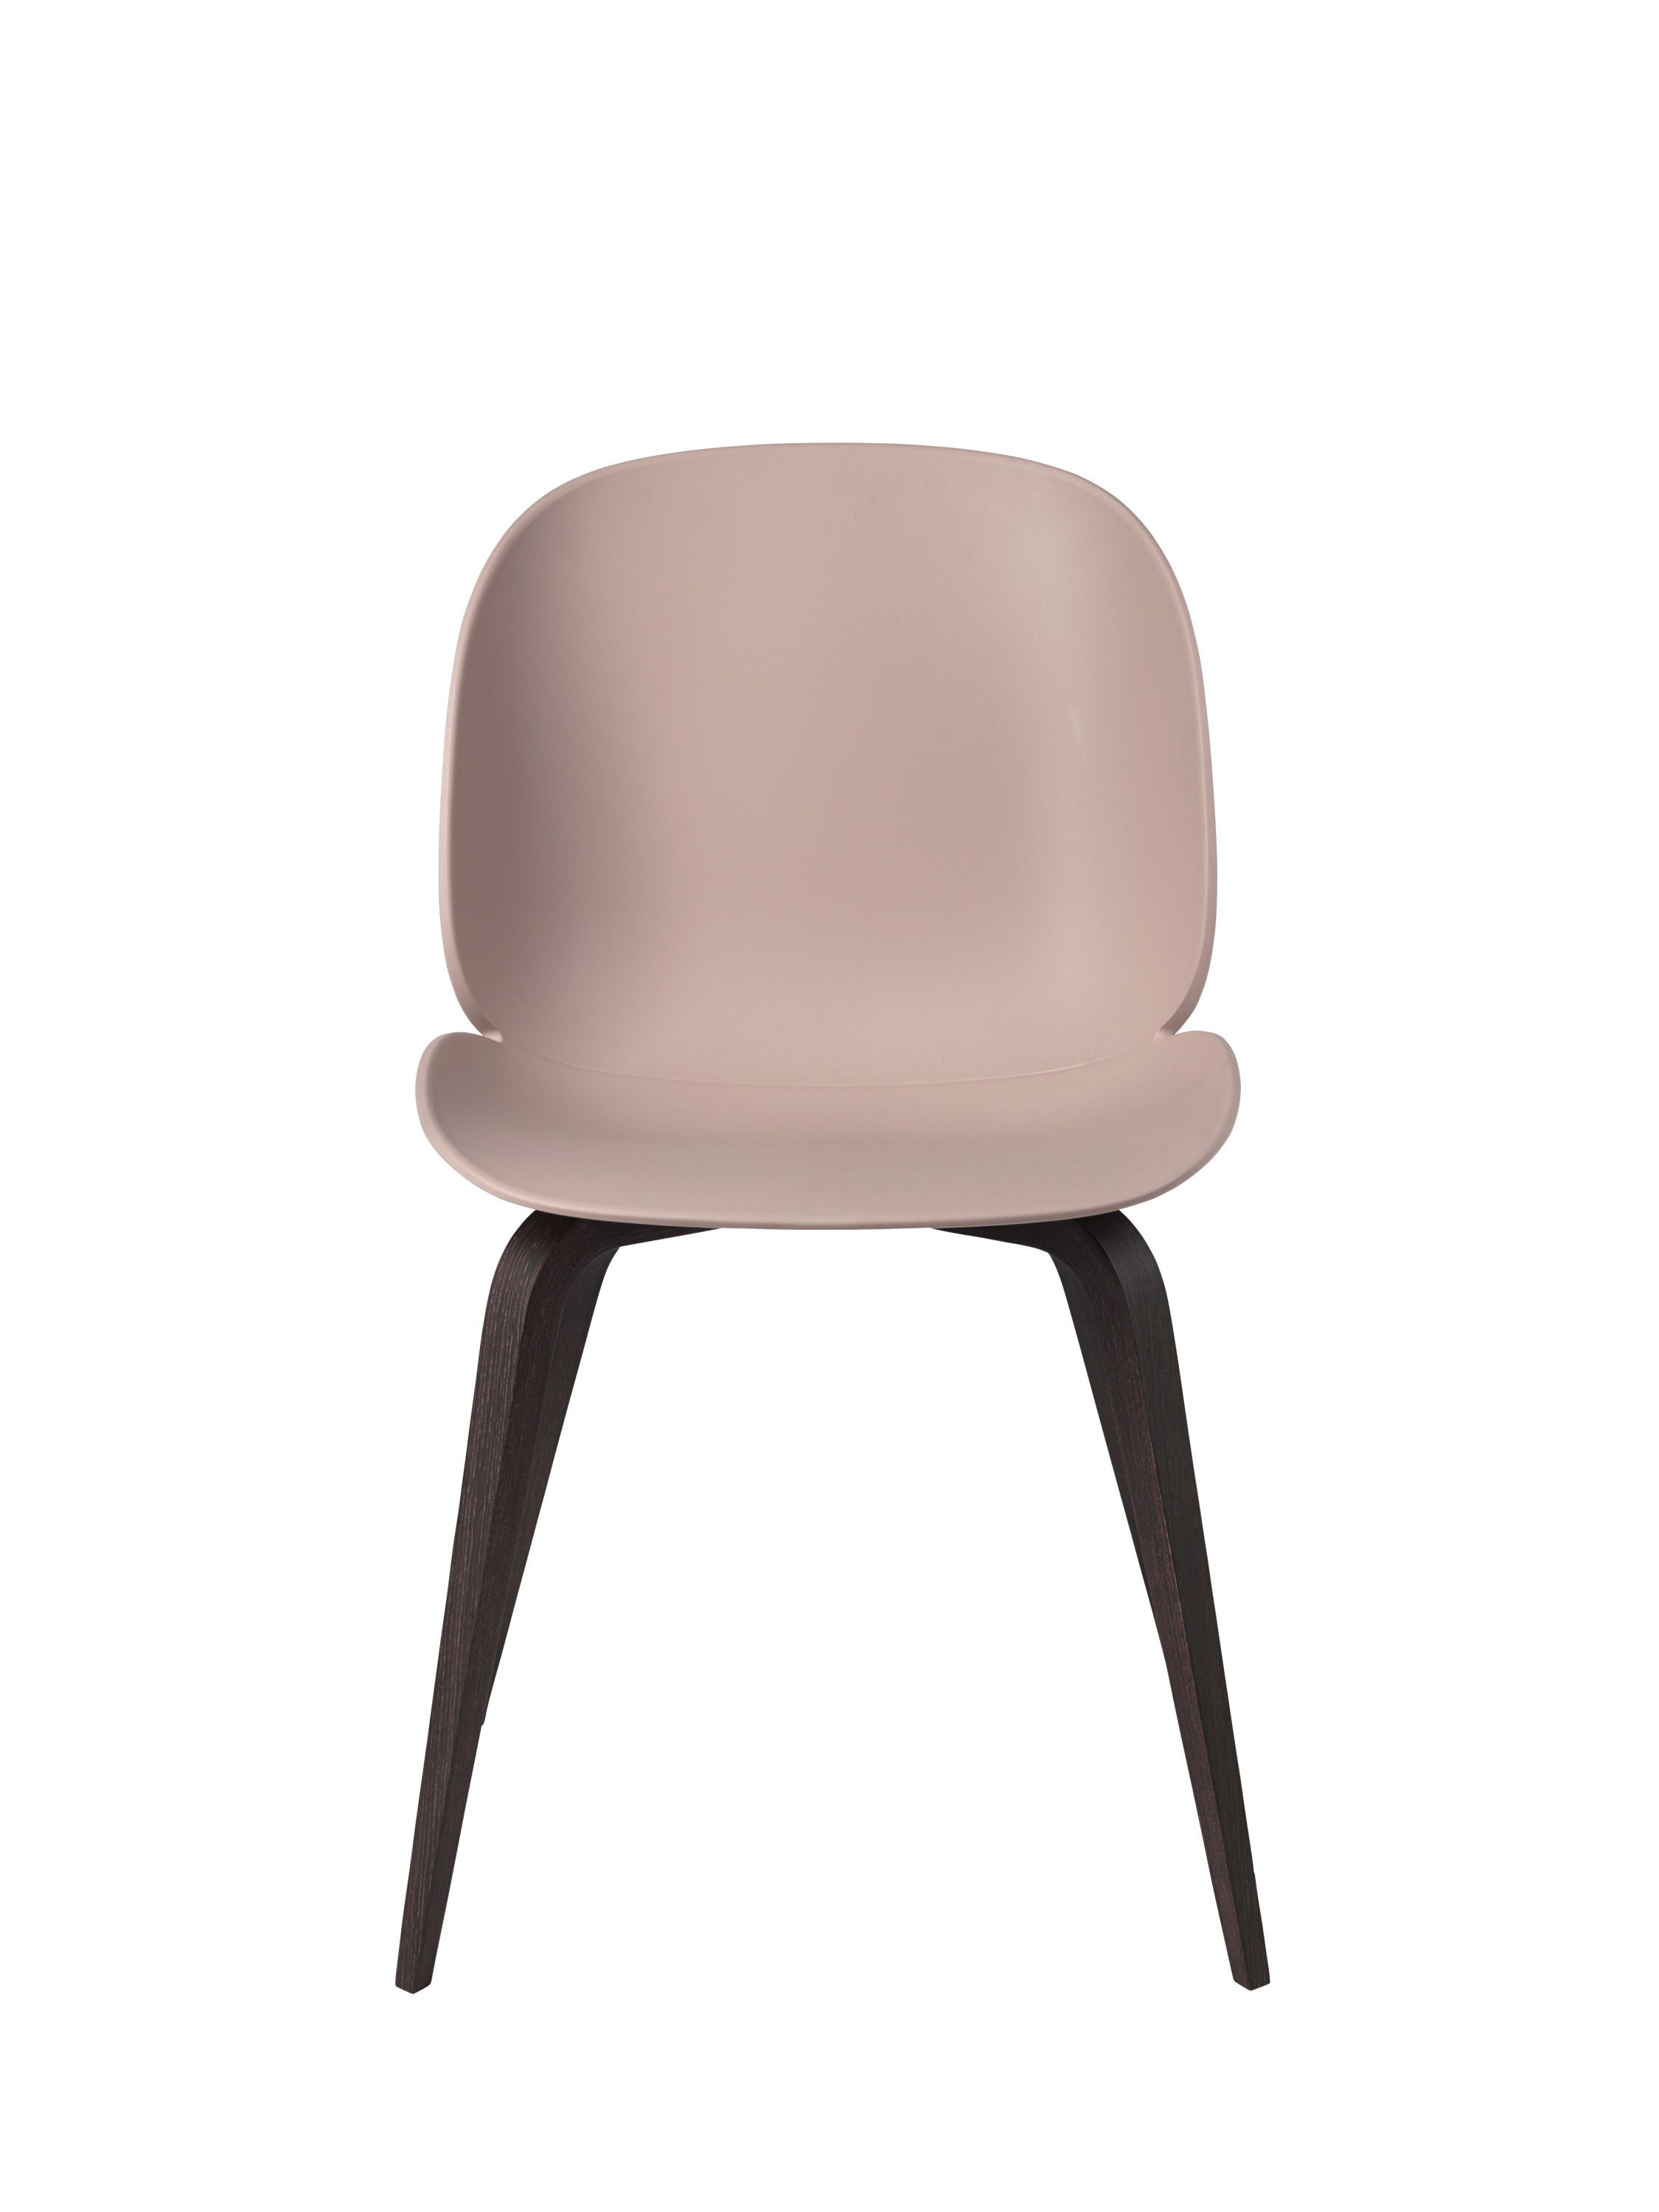 Beetle Dining Chair - Un-upholstered Smoked Oak base, Sweet Pink shell fra GUBI